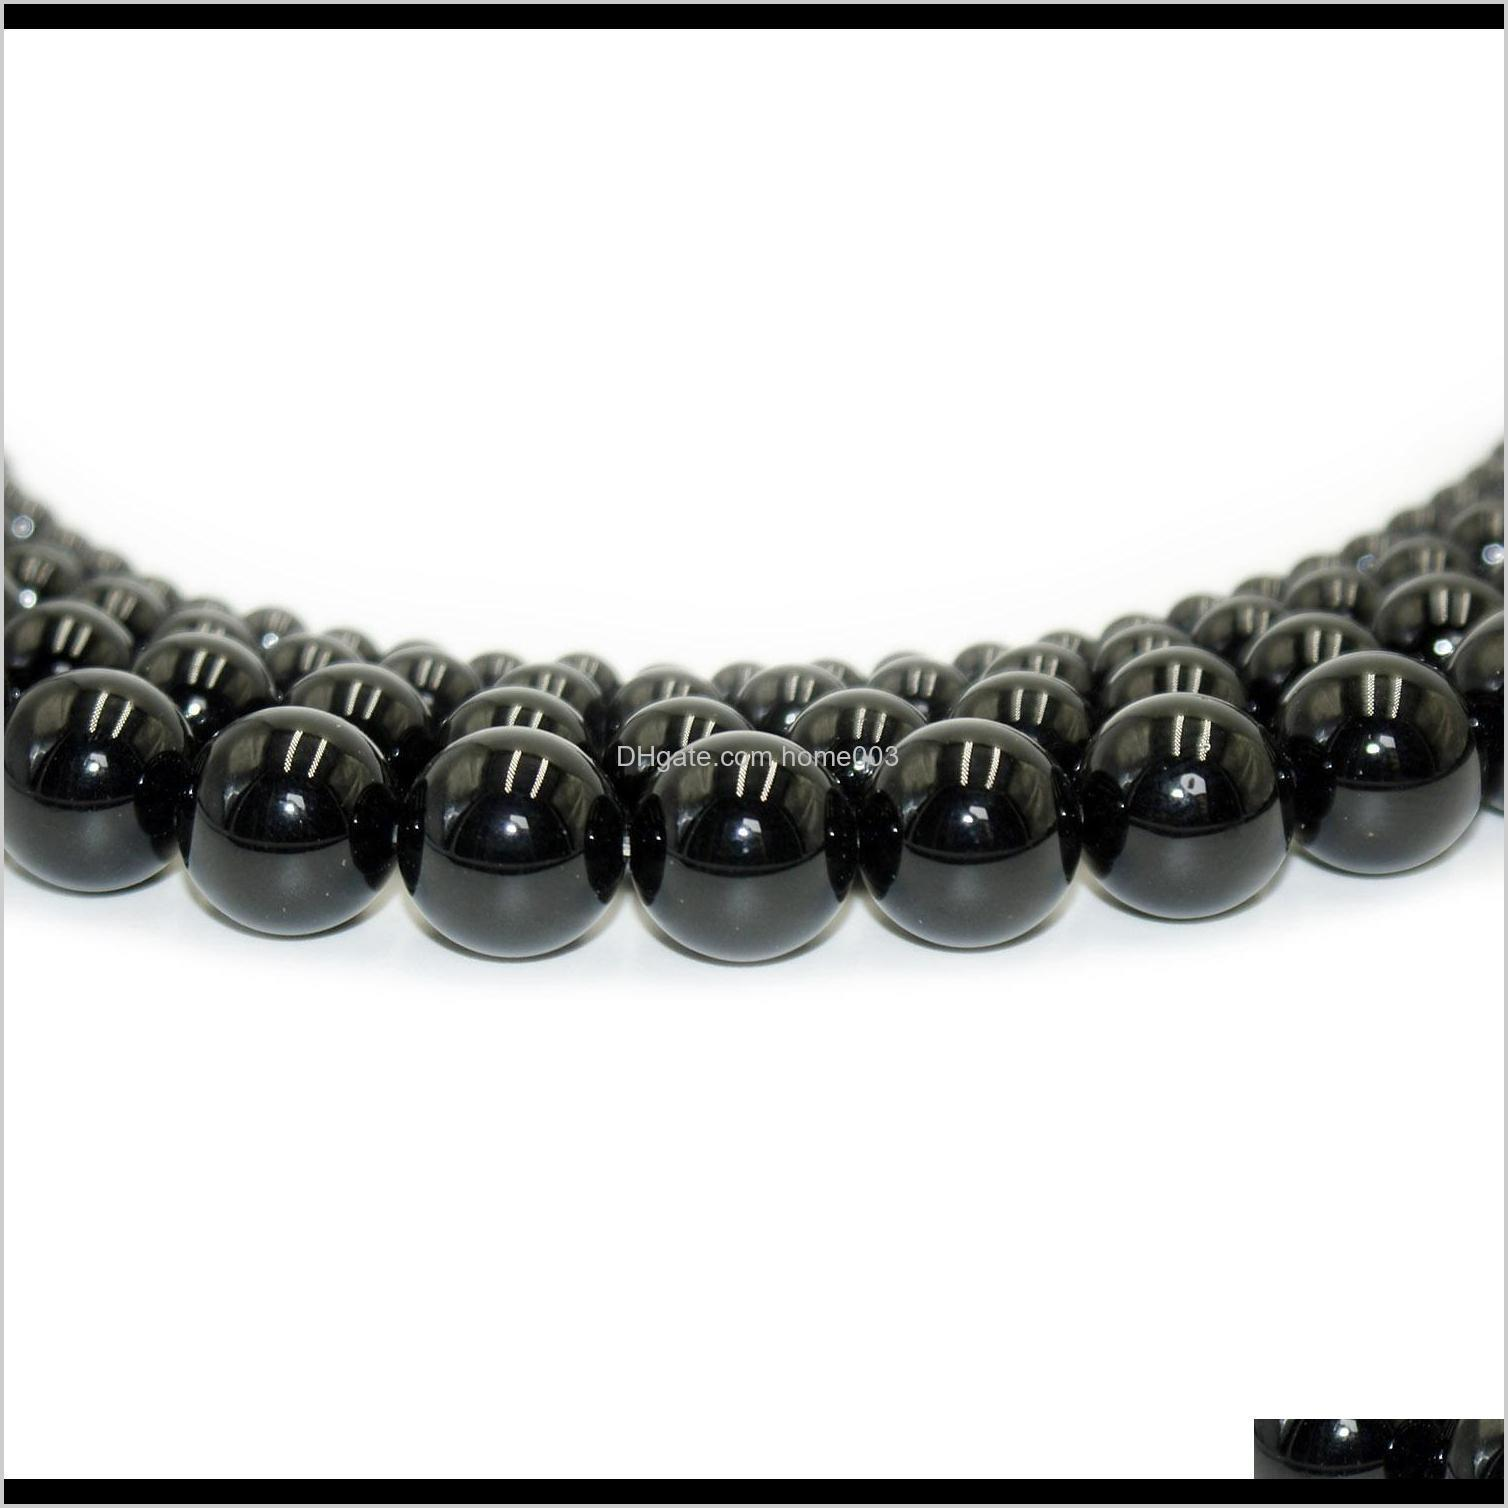 100% natural stone black obsidian beads round gemstone loose beads for diy bracelet jewelry making 1 strand 15 inches 4-10 mm